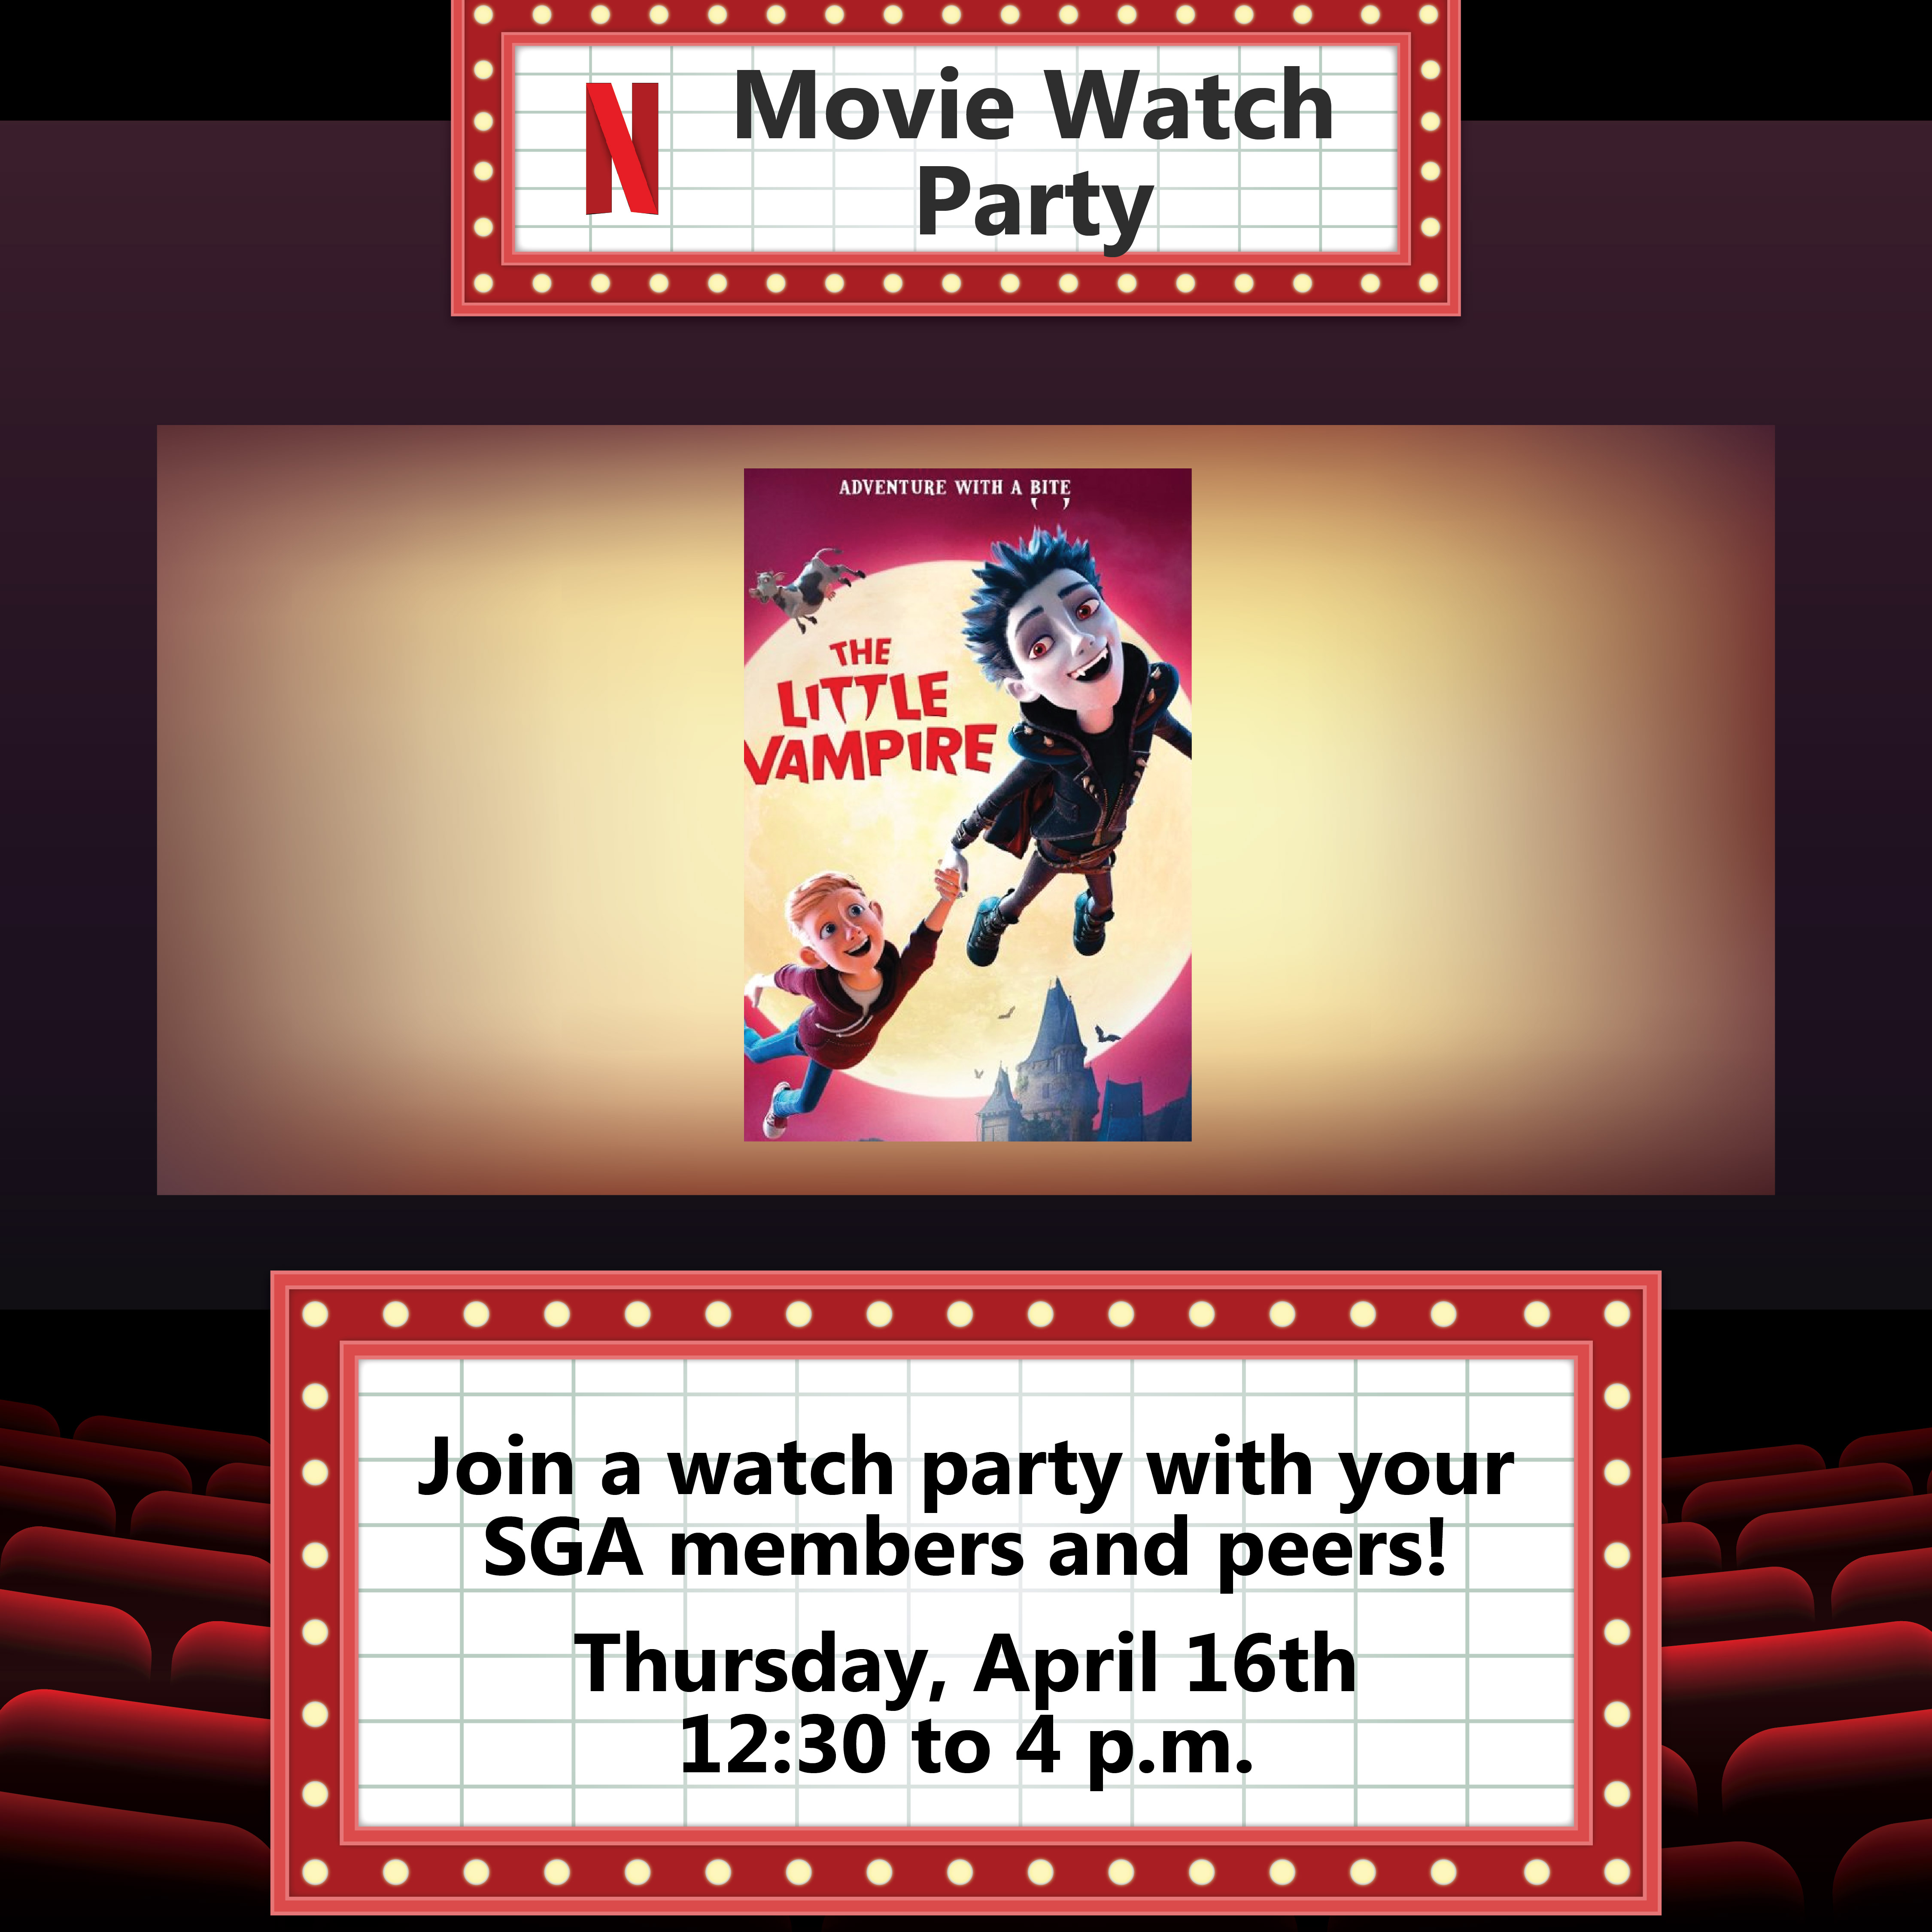 Join a watch party with your SGA members and peers!